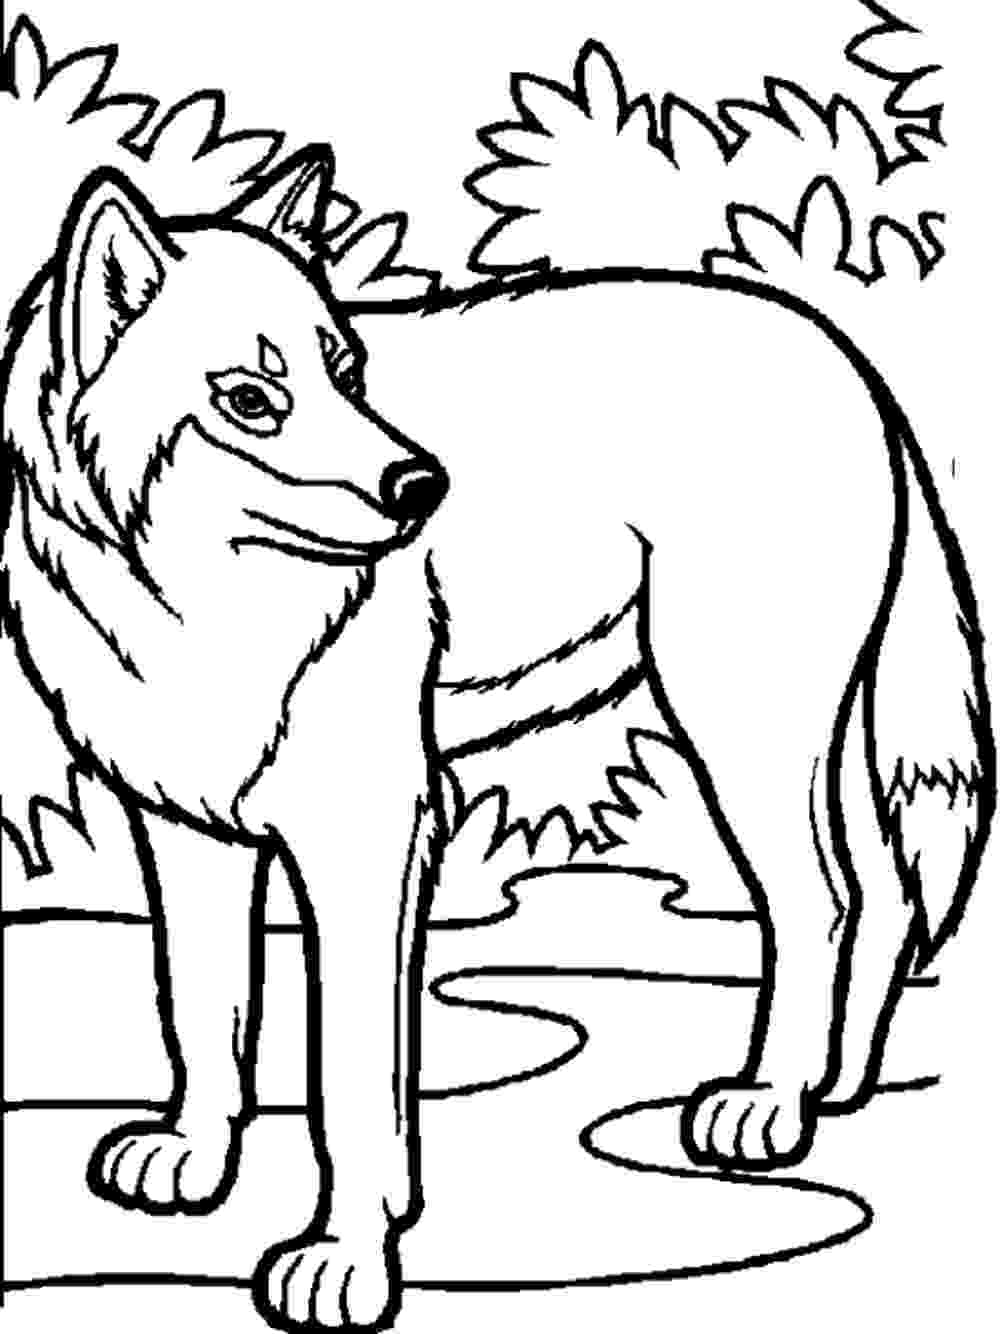 printable pictures of wolves free printable wolf coloring pages for kids of pictures wolves printable